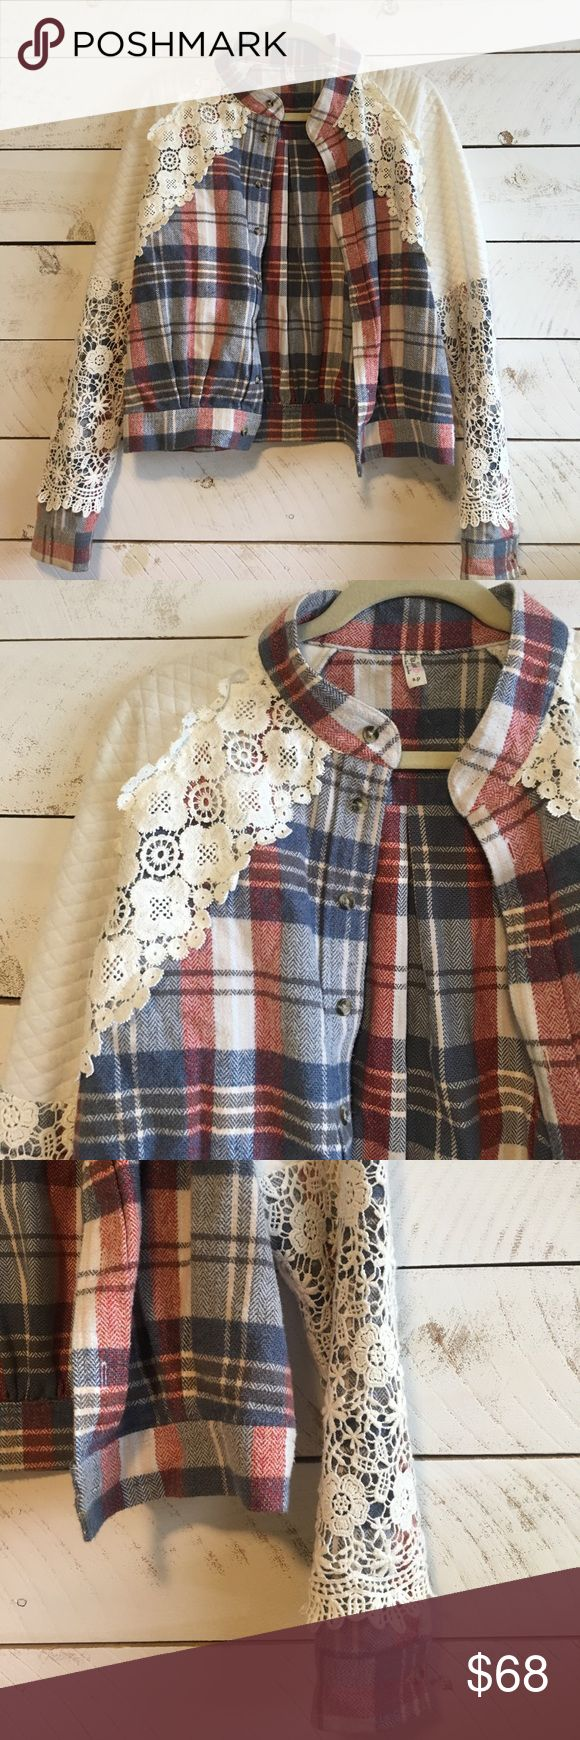 Free People Jacket Red cream and blue plaid jacket with floral embroidered detail on sleeves and across collar. So cute over a graphic tank and lightweight 100% cotton. Great condition! Free People Jackets & Coats